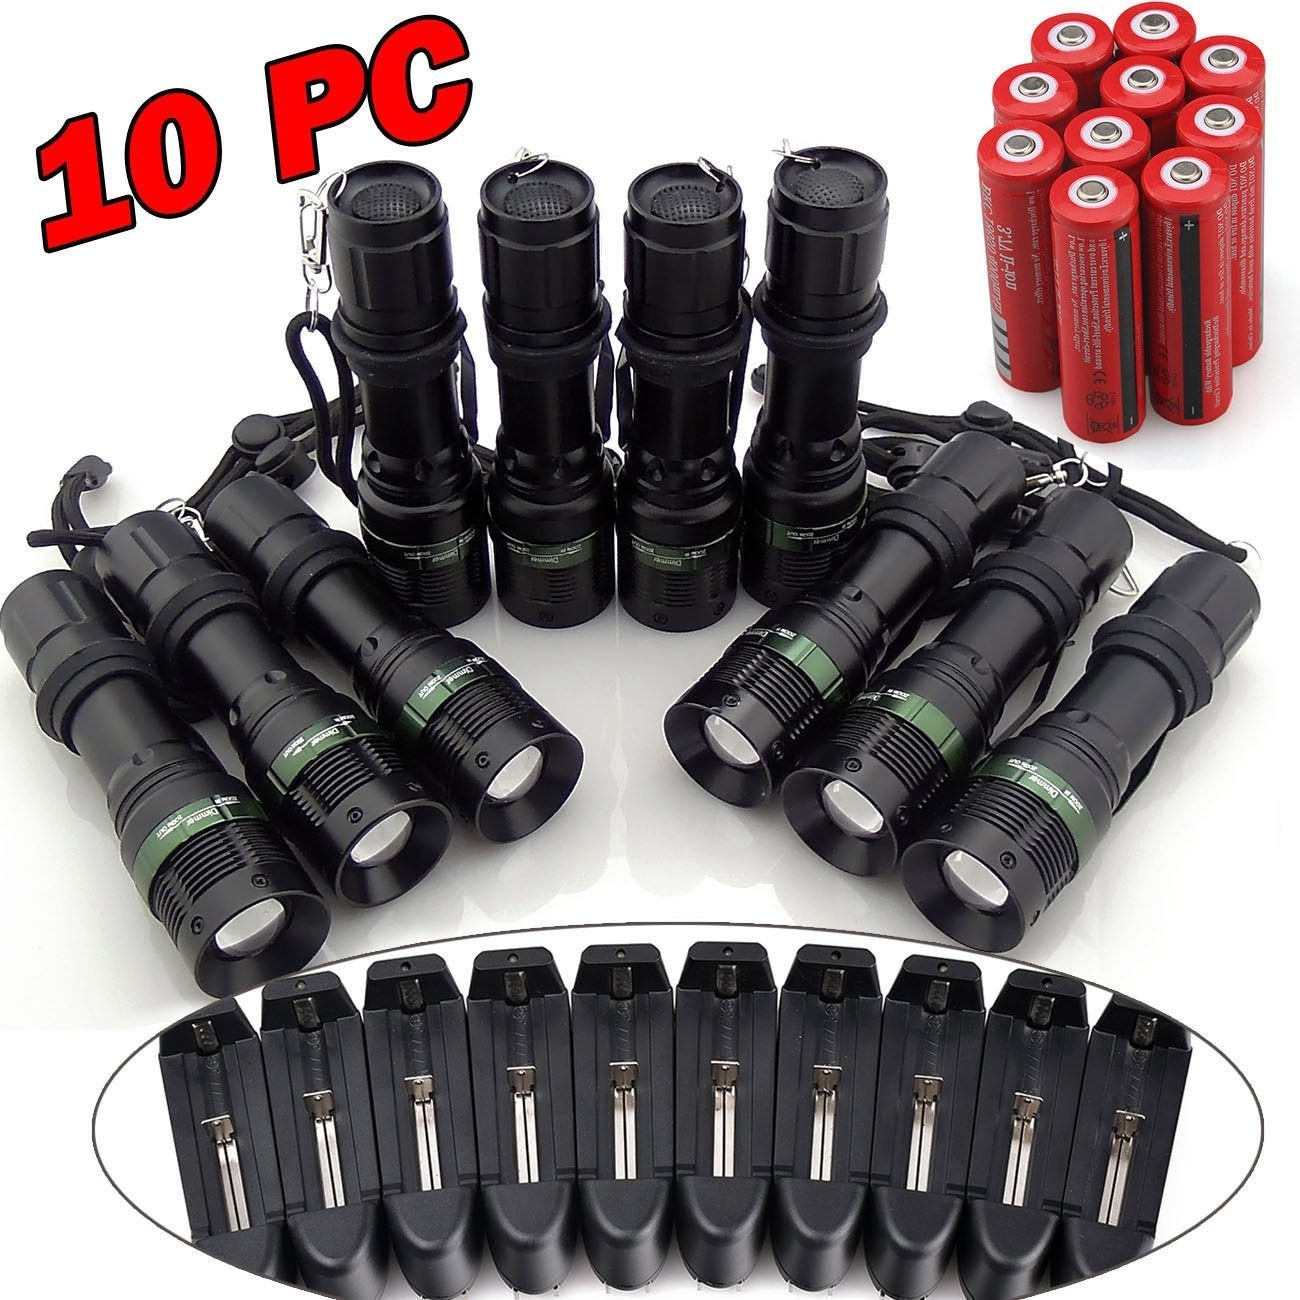 New MTN-G 10PCS 10000Lumen Zoom XM-L T6 LED 18650 Flashli...